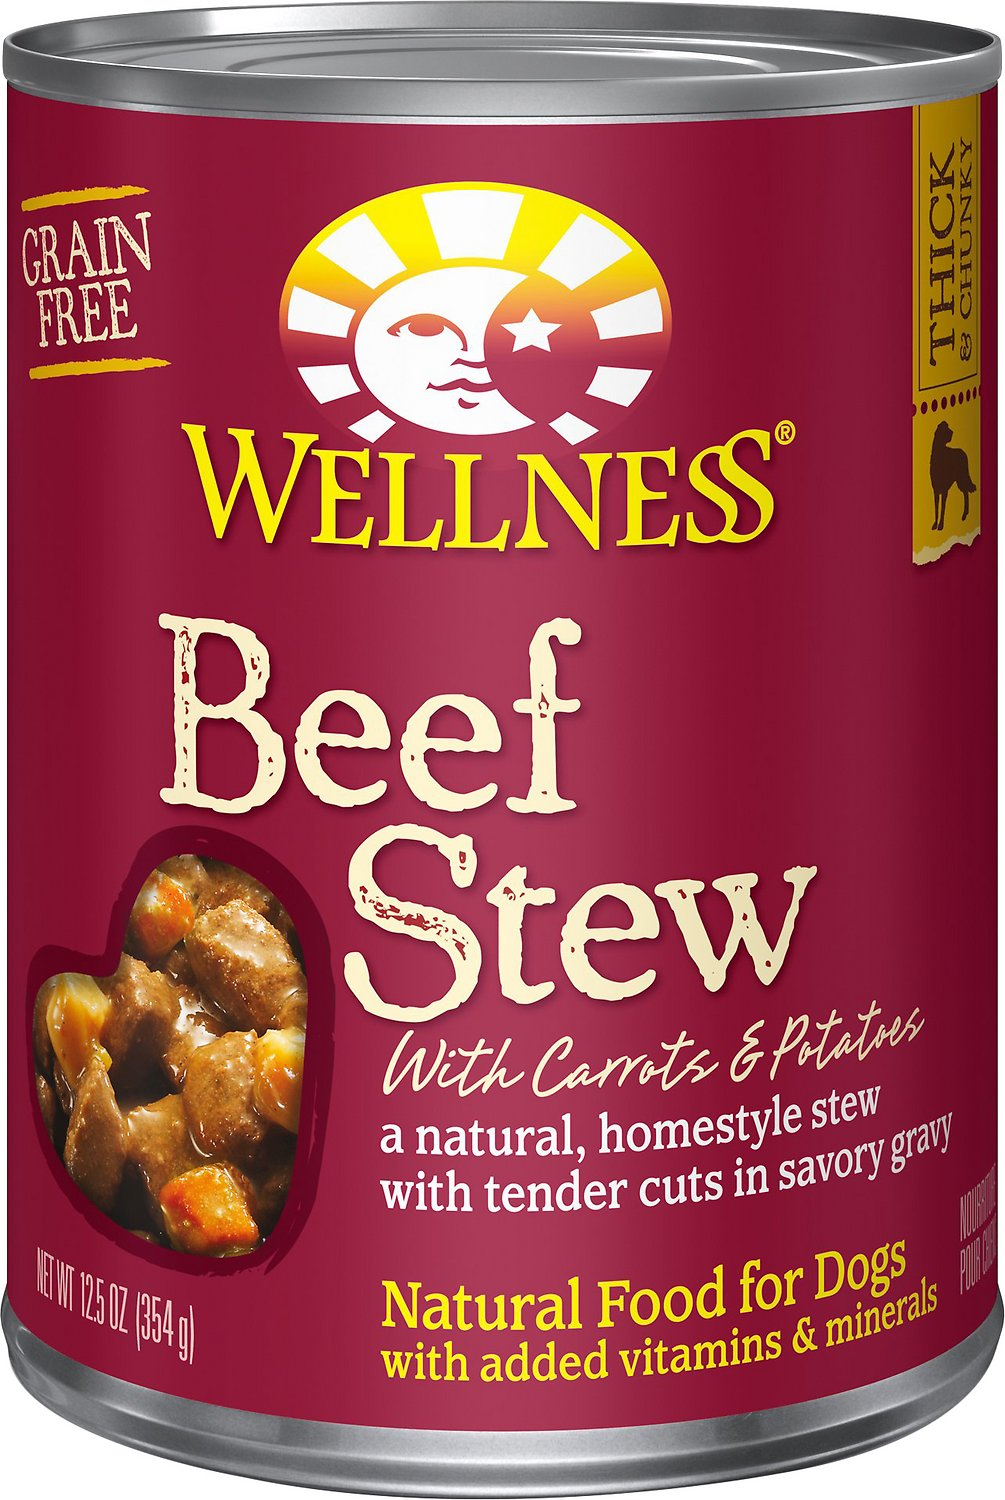 Wellness Beef Stew with Carrots & Potatoes Grain-Free Canned Dog Food, 12.5-oz